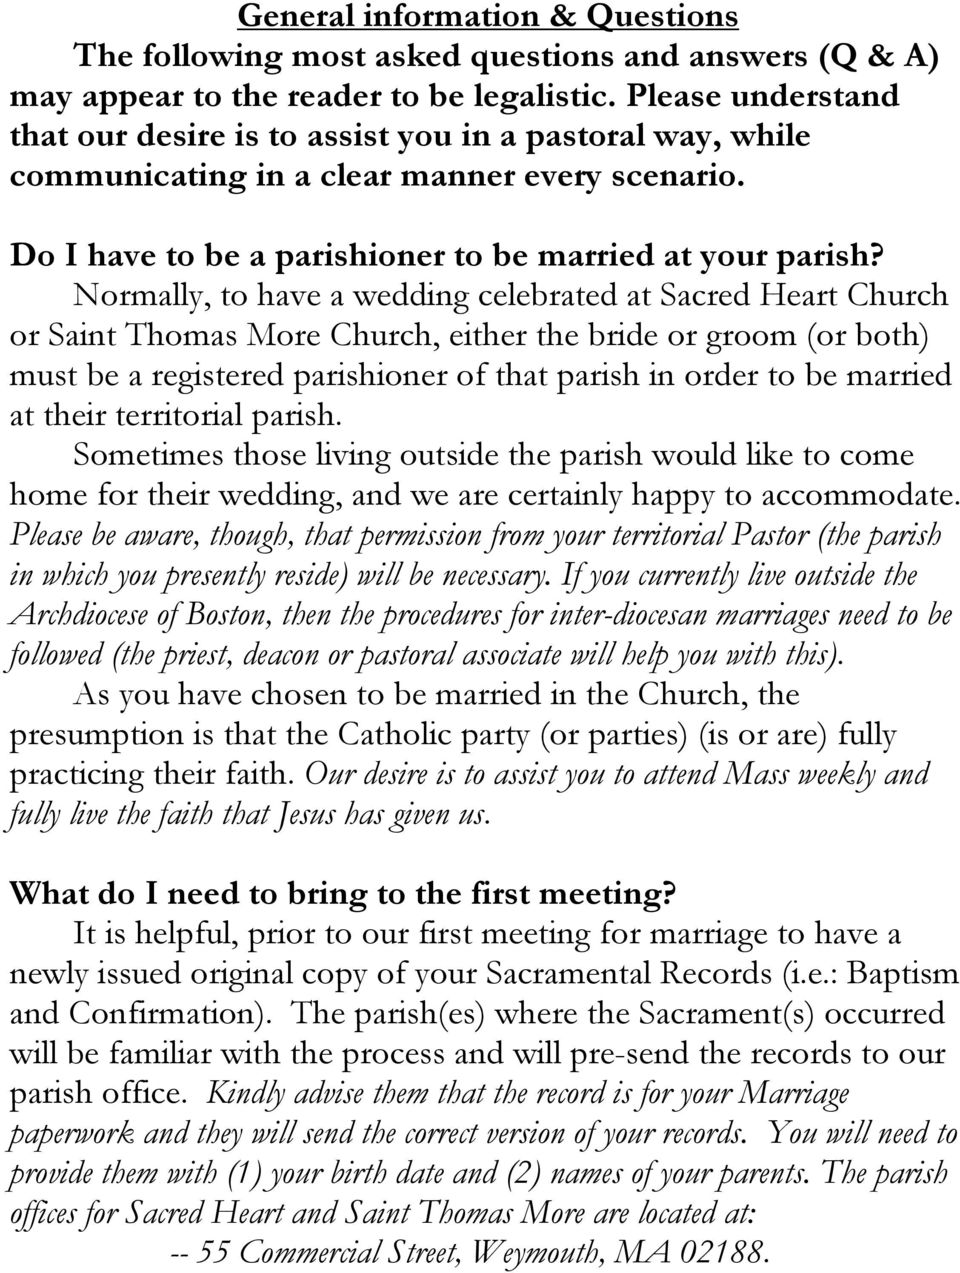 Normally, to have a wedding celebrated at Sacred Heart Church or Saint Thomas More Church, either the bride or groom (or both) must be a registered parishioner of that parish in order to be married